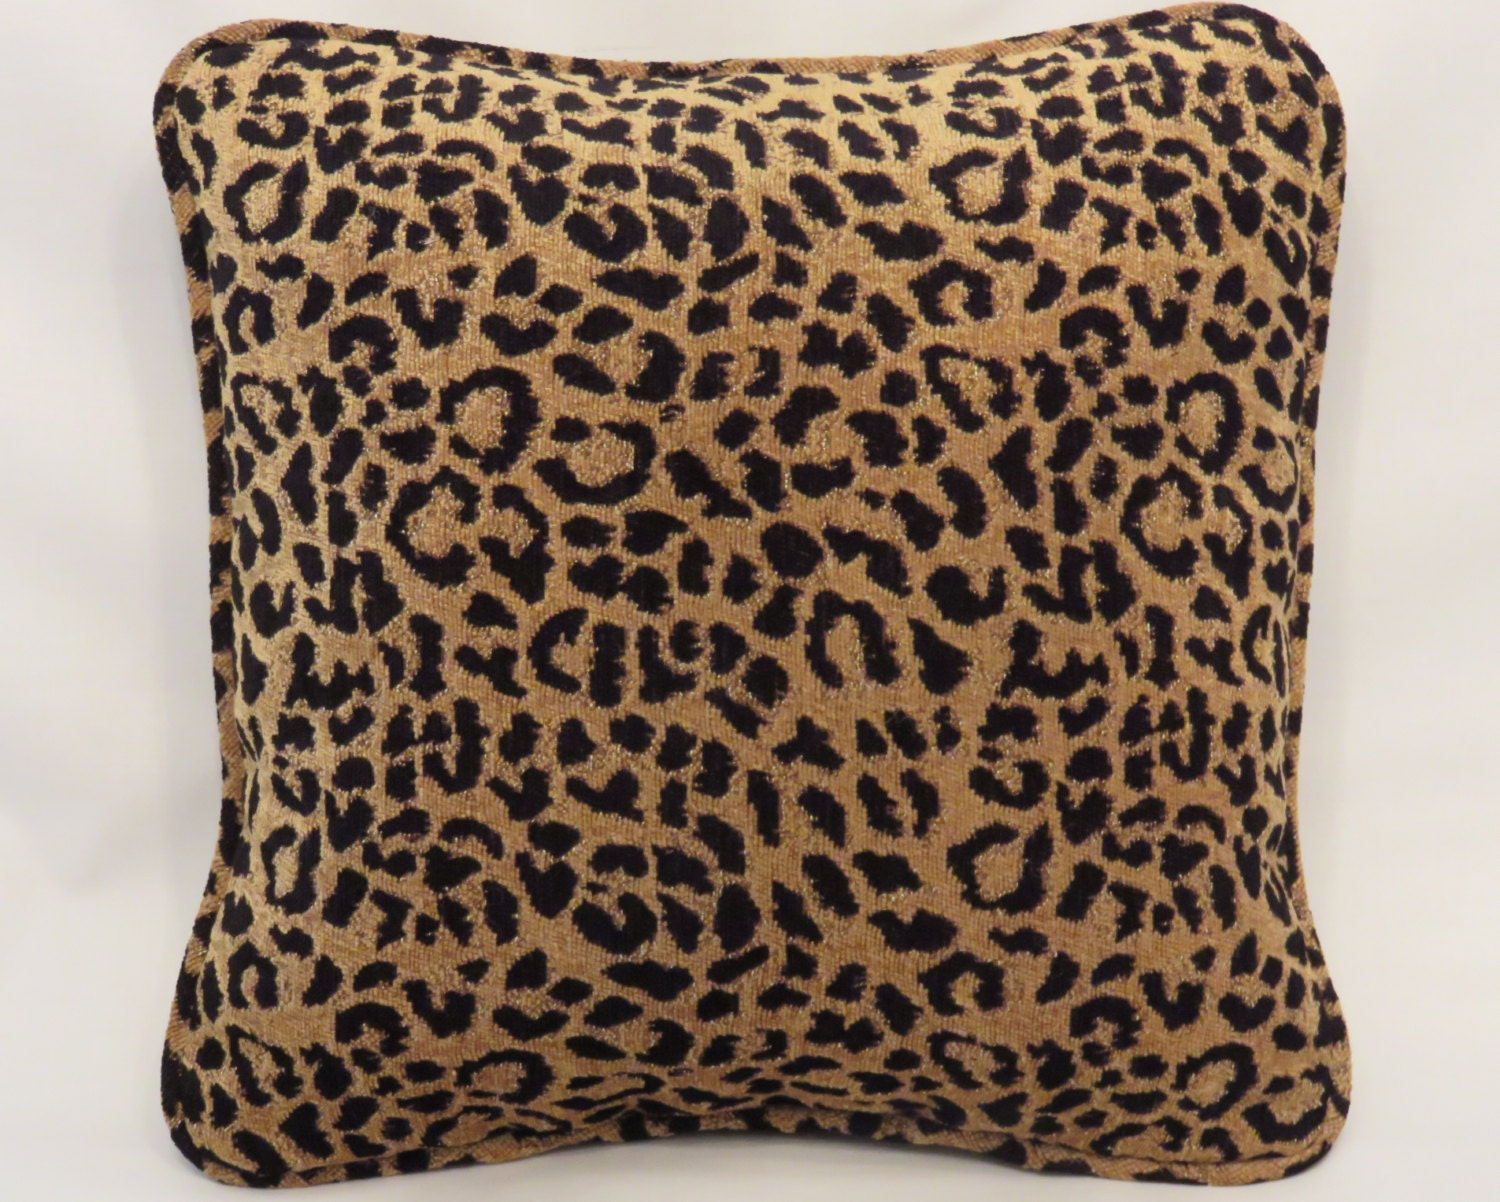 Big Soft Throw Pillows : Leopard Chenille Throw Pillow 18 Square Big and Soft